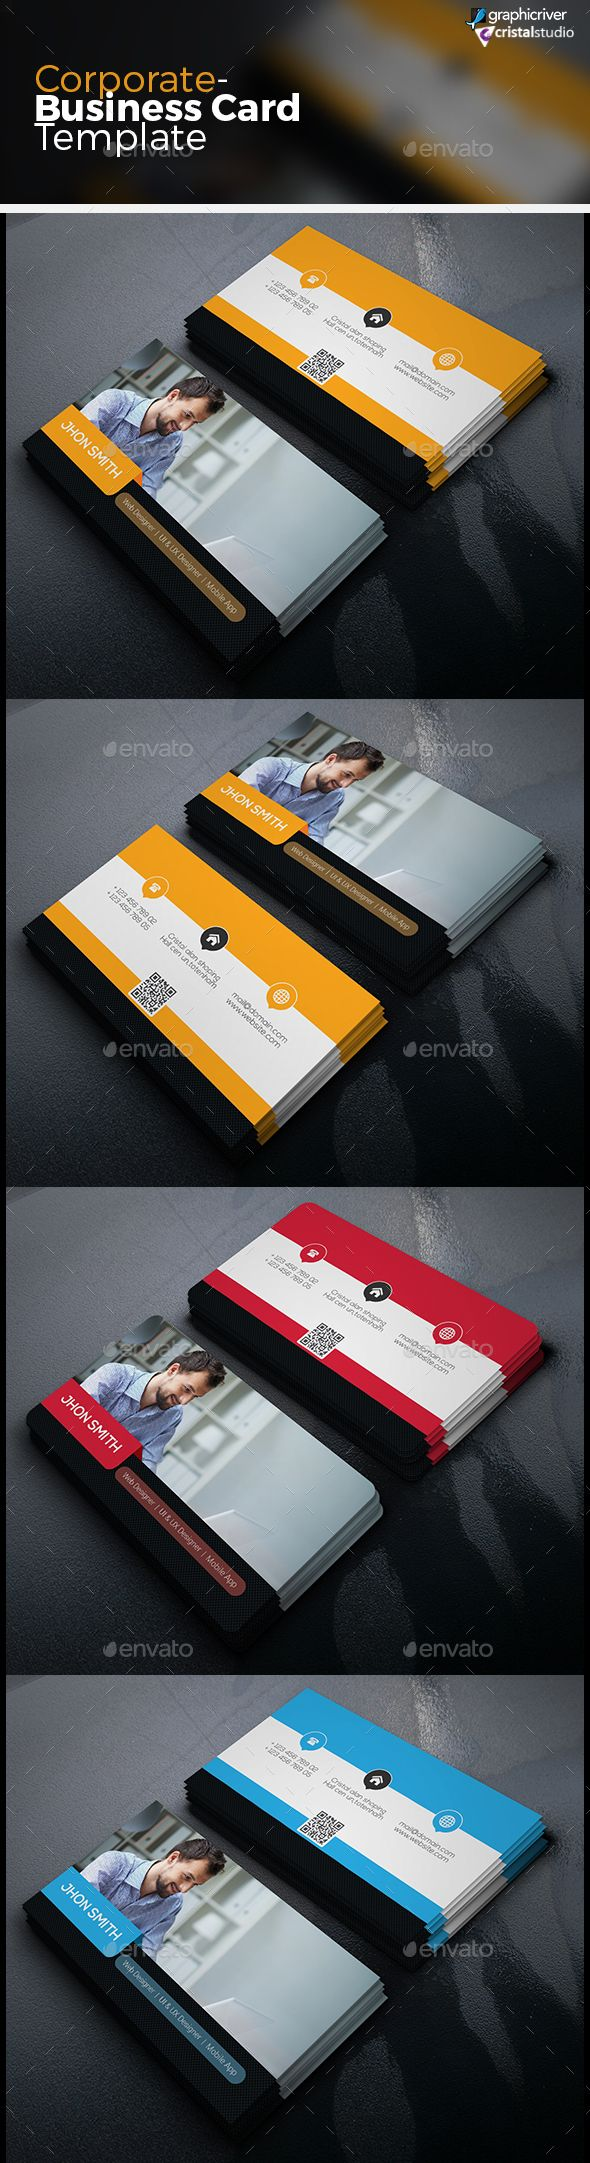 85 best Creative Market Business Card images on Pinterest ...